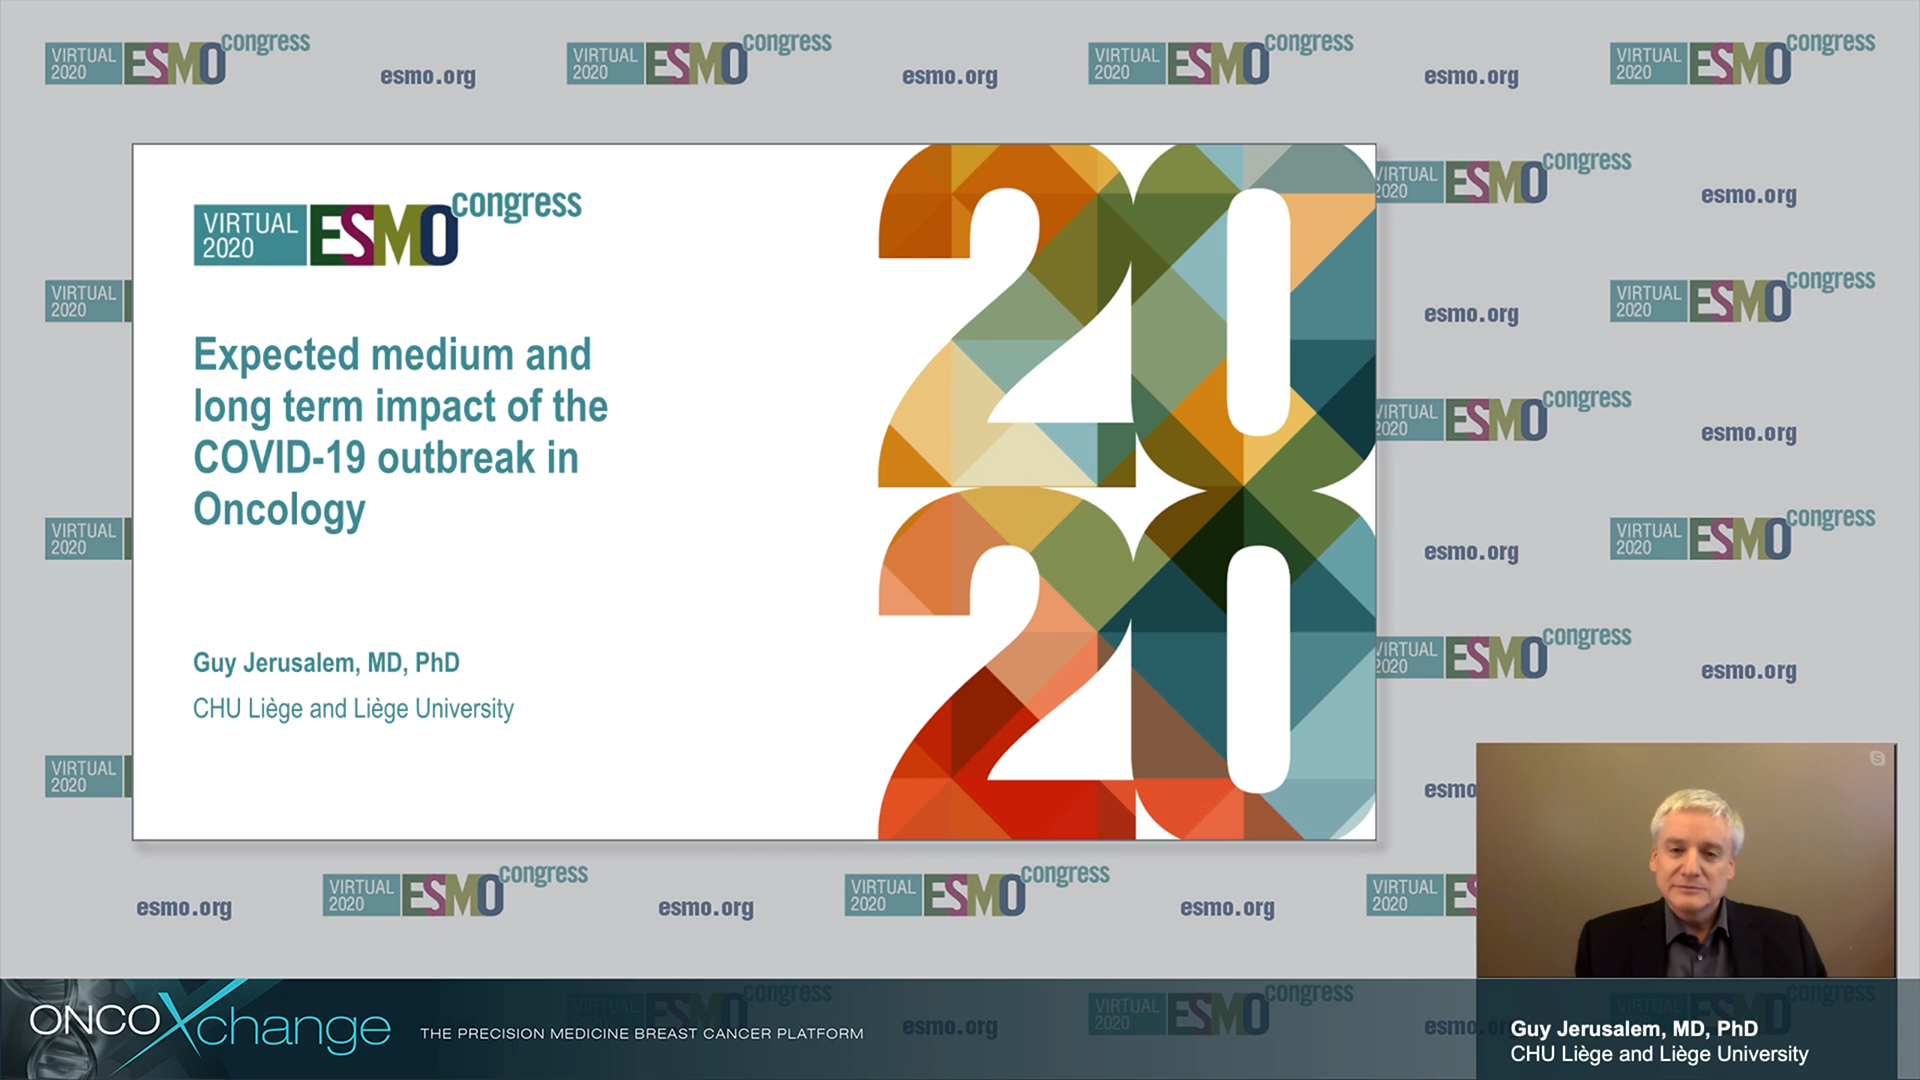 ESMO-2020 - Expected medium and long-term impact of the COVID-19 outbreak in Oncology